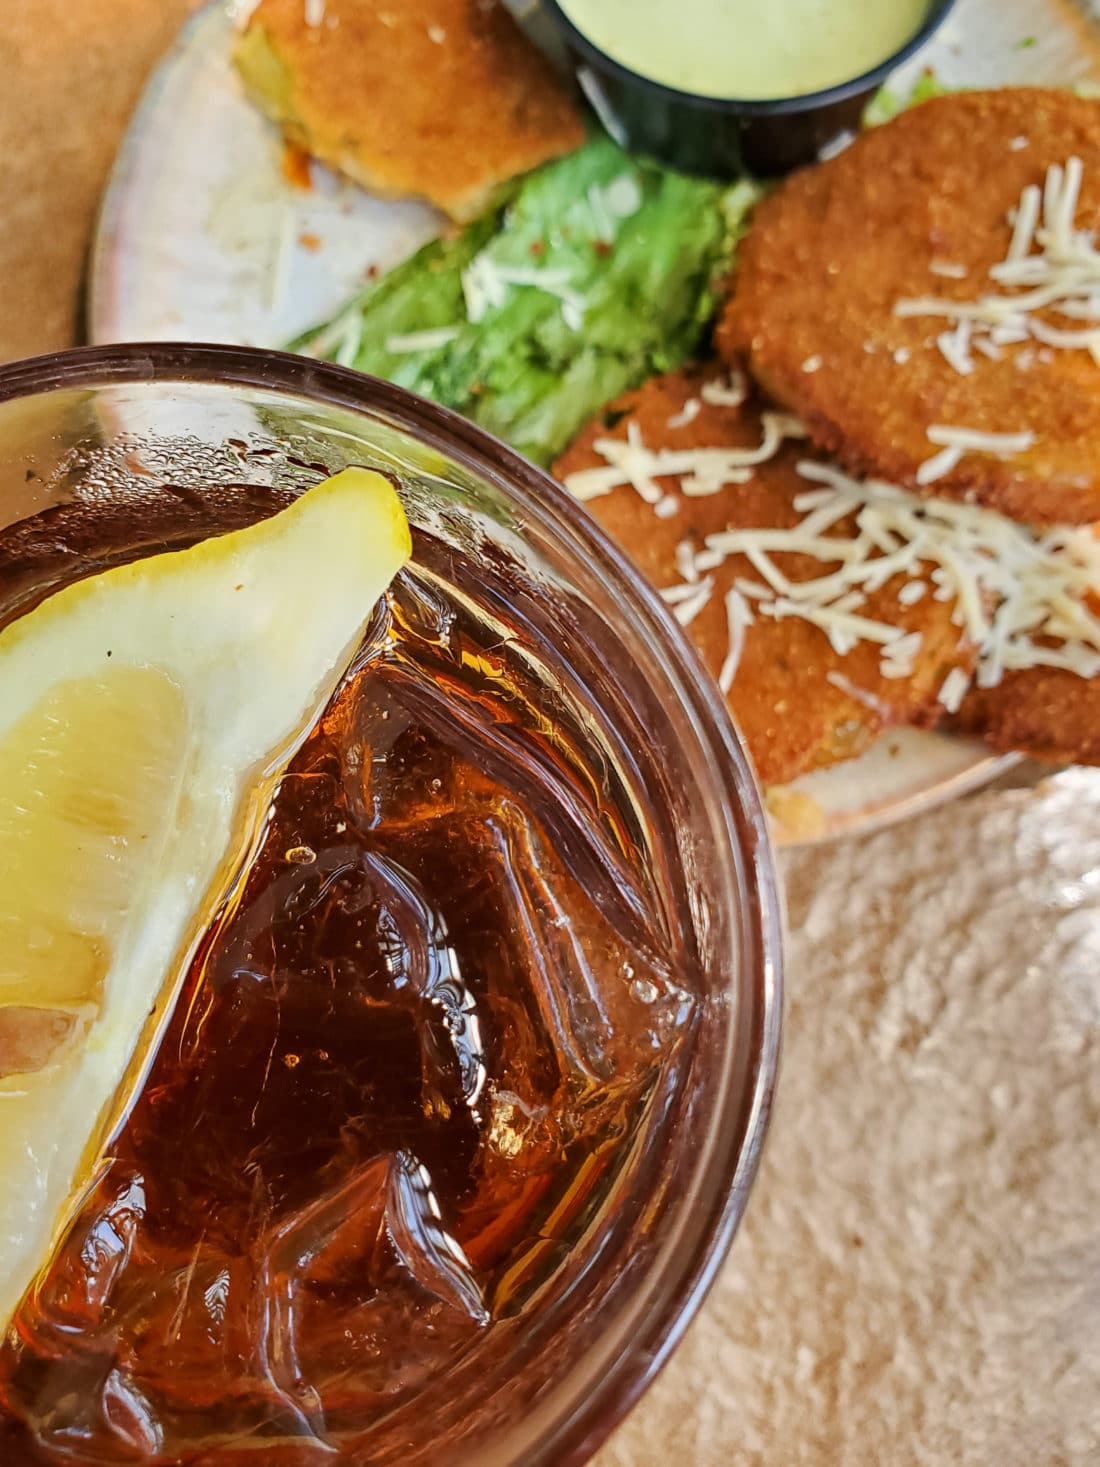 Pottery House Cafe Iced Tea. The Pottery House Cafe serves freshly made sandwiches, salads, and hearty entrees on dishes created by our potters right next door. Read my full review which includes photos of this beautiful and delicious location in Pigeon Forge, TN.